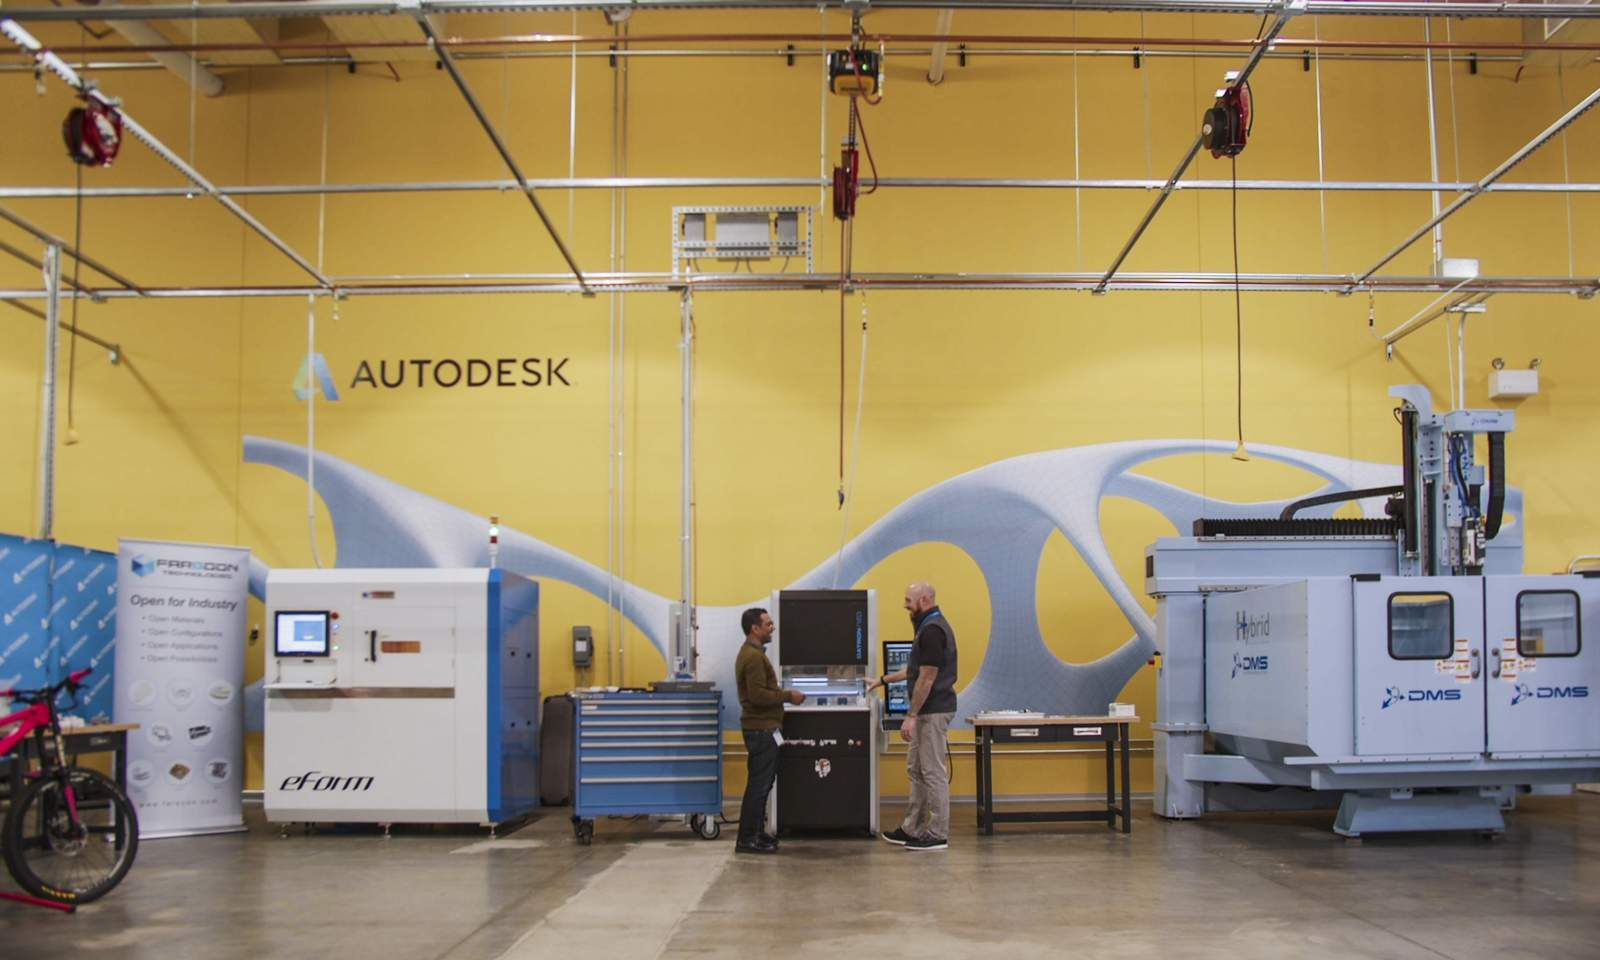 Autodesk's Generative Design Field Lab